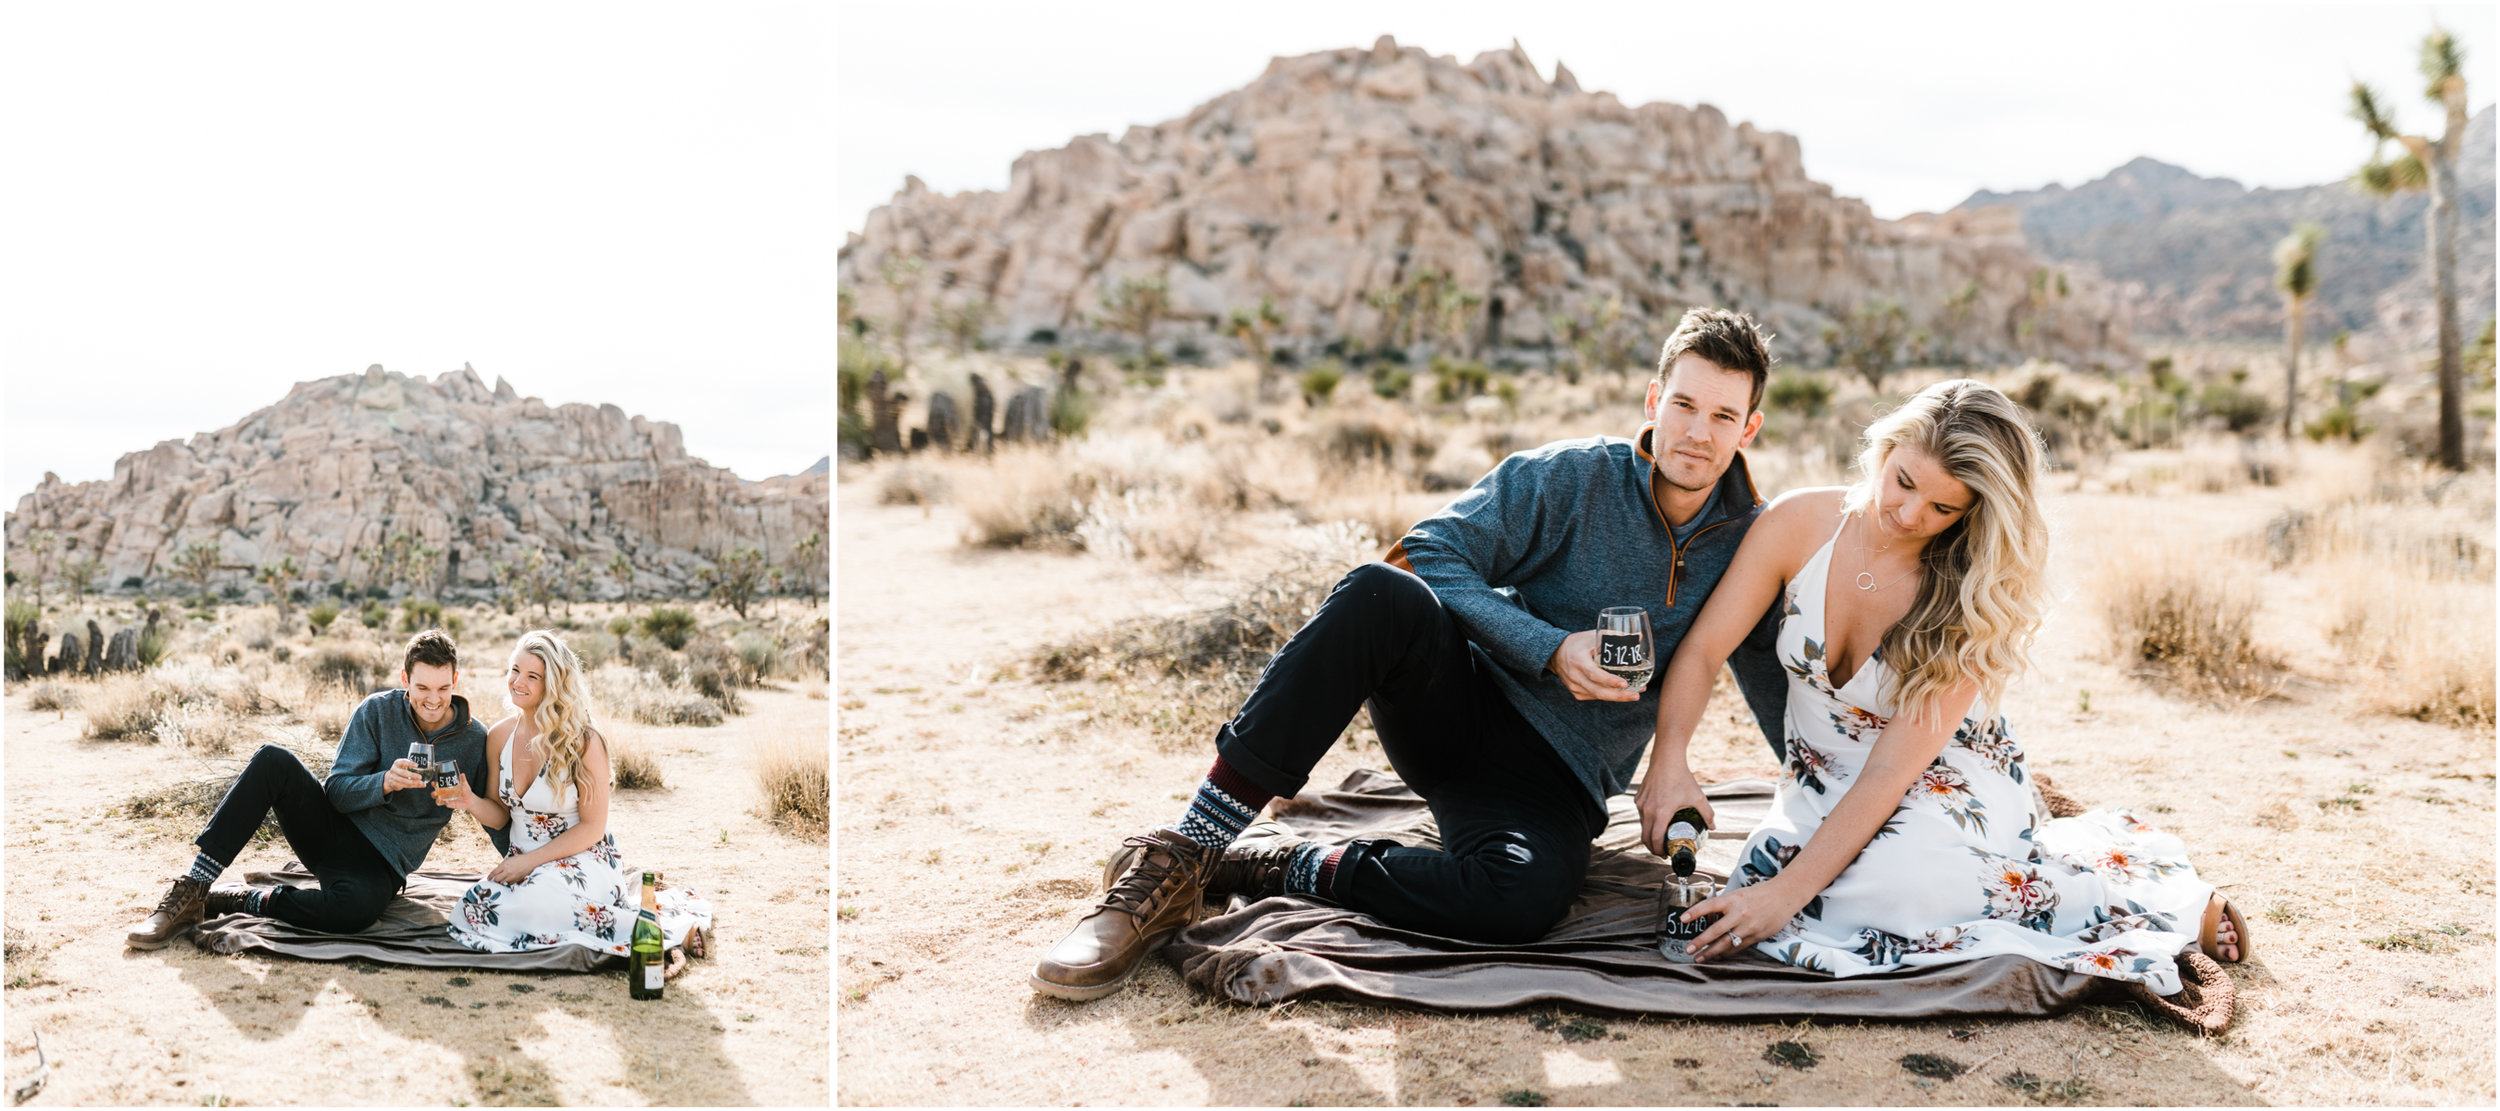 Dano&Andrew-Joshua-Tree-Engagement-Session-CRM-Media-Southern-California-Wedding-Photographer33